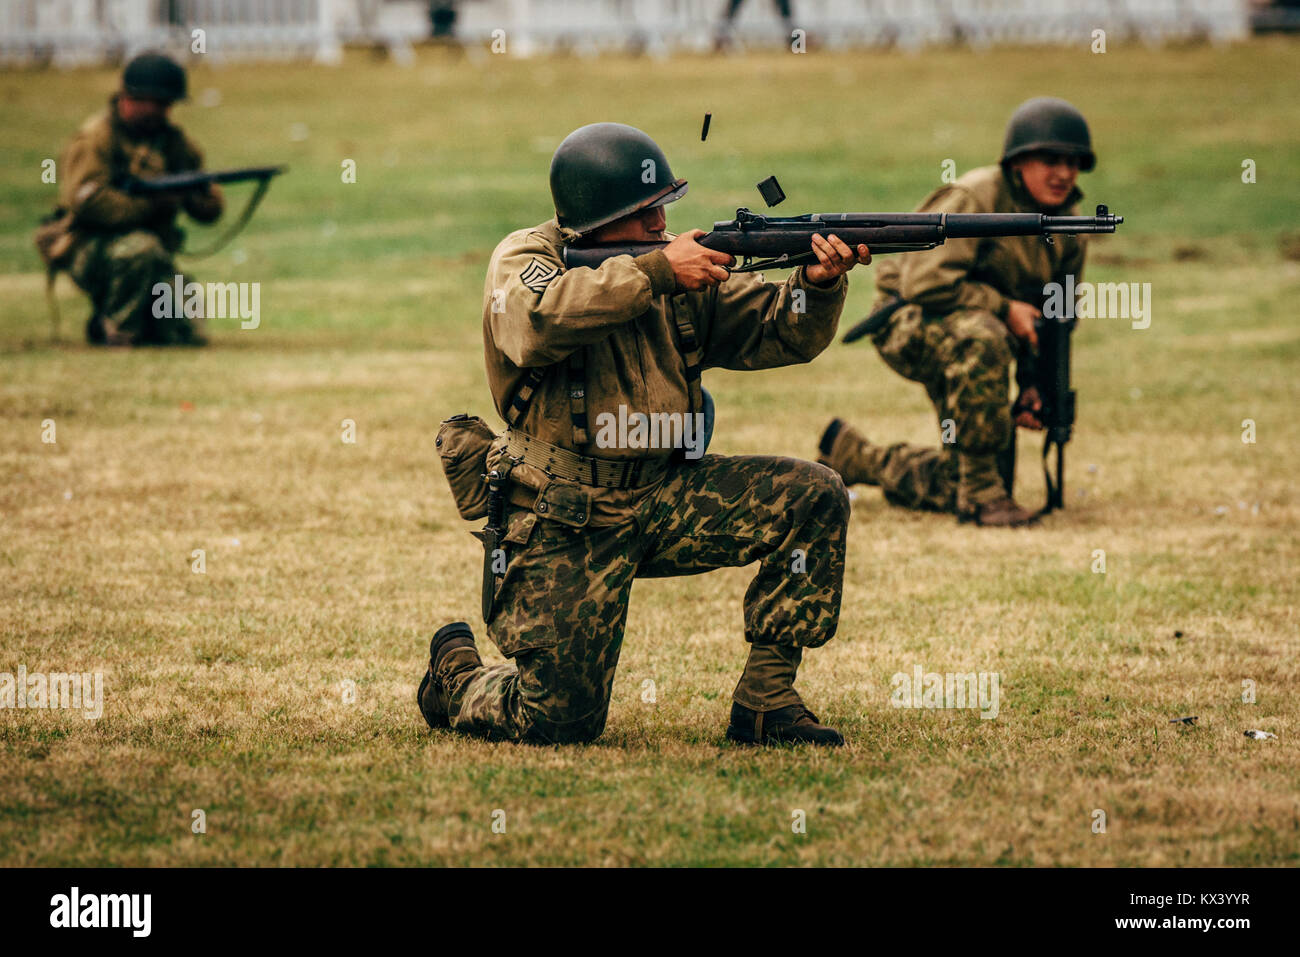 USA soldiers in ww2 reenactment Stock Photo: 170962171 - Alamy